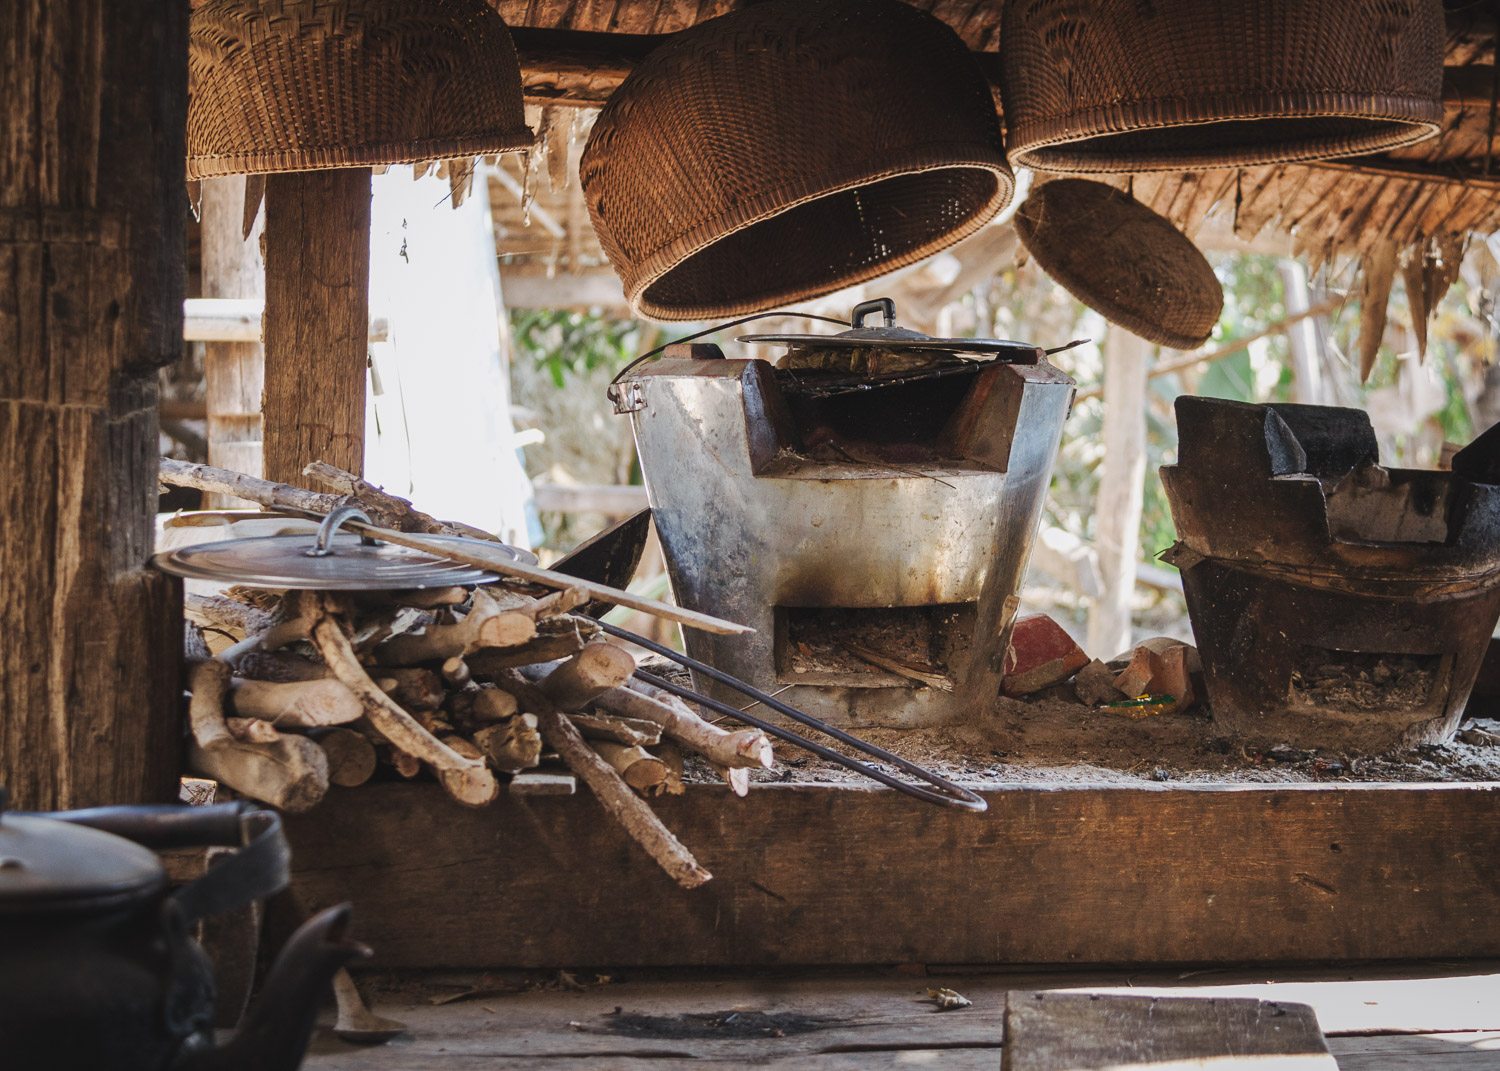 Wood-fired stoves, firwoood, and baskets in a rural kitchen in Siem Reap Province, Cambodia